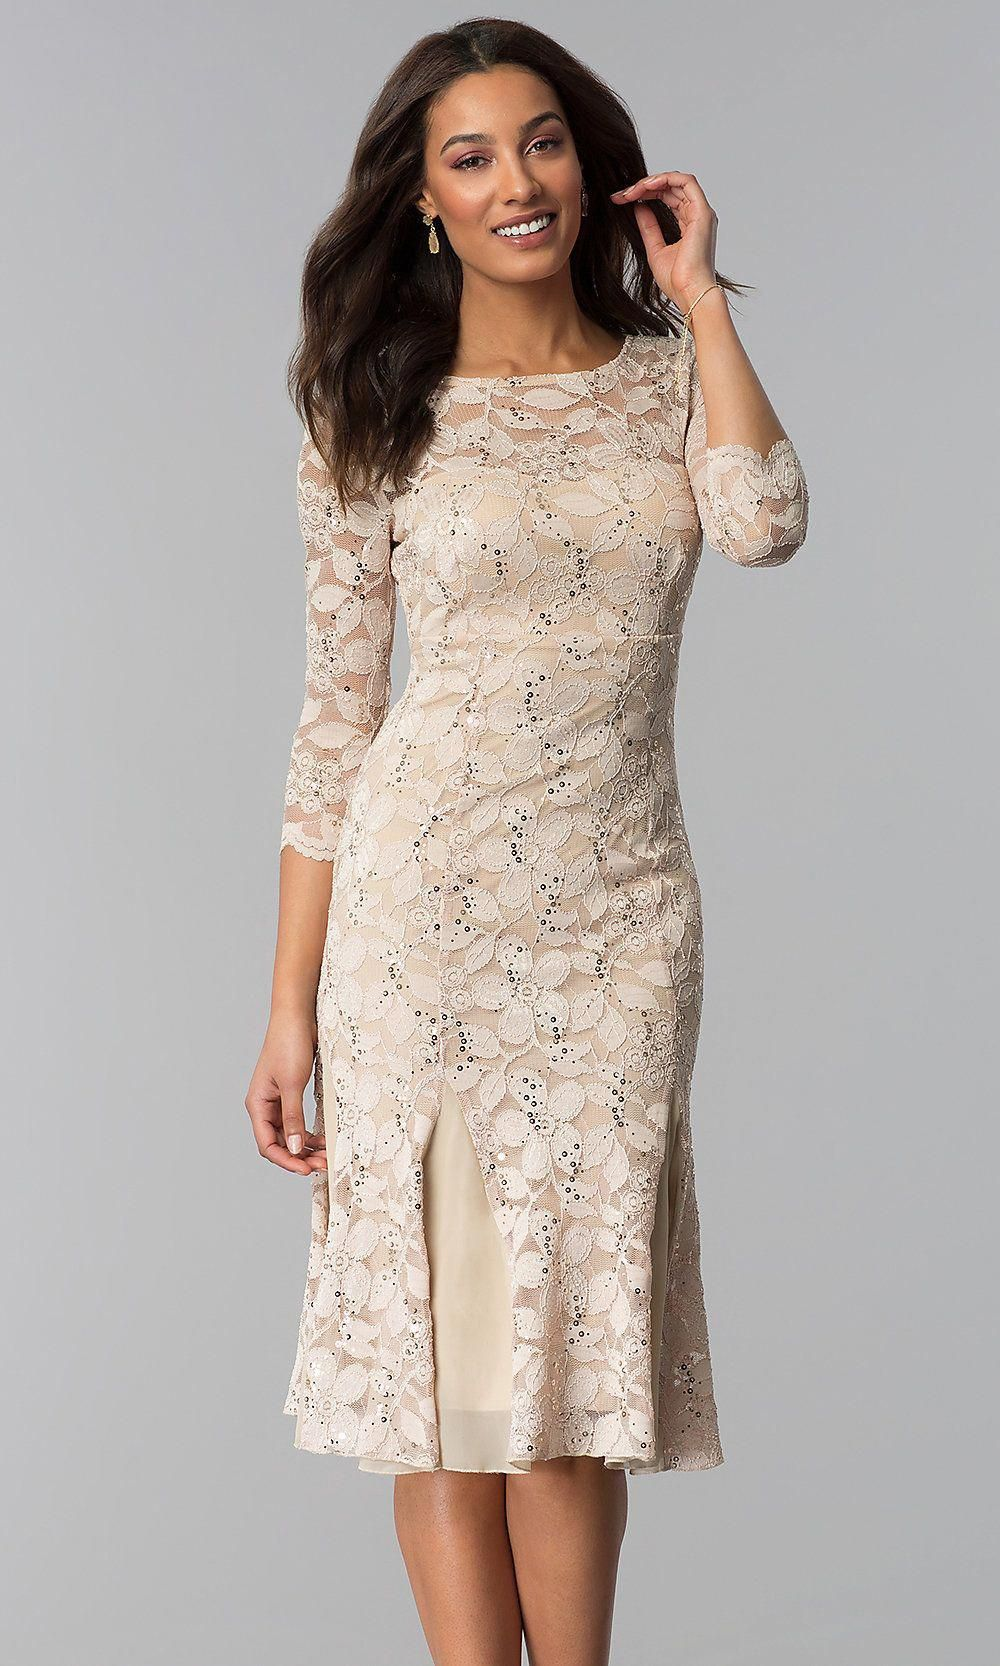 Scoop Neck Lace Wedding Guest Dress With Sleeves Lace Wedding Guest Dress Wedding Guest Dress Dresses [ 1666 x 1000 Pixel ]